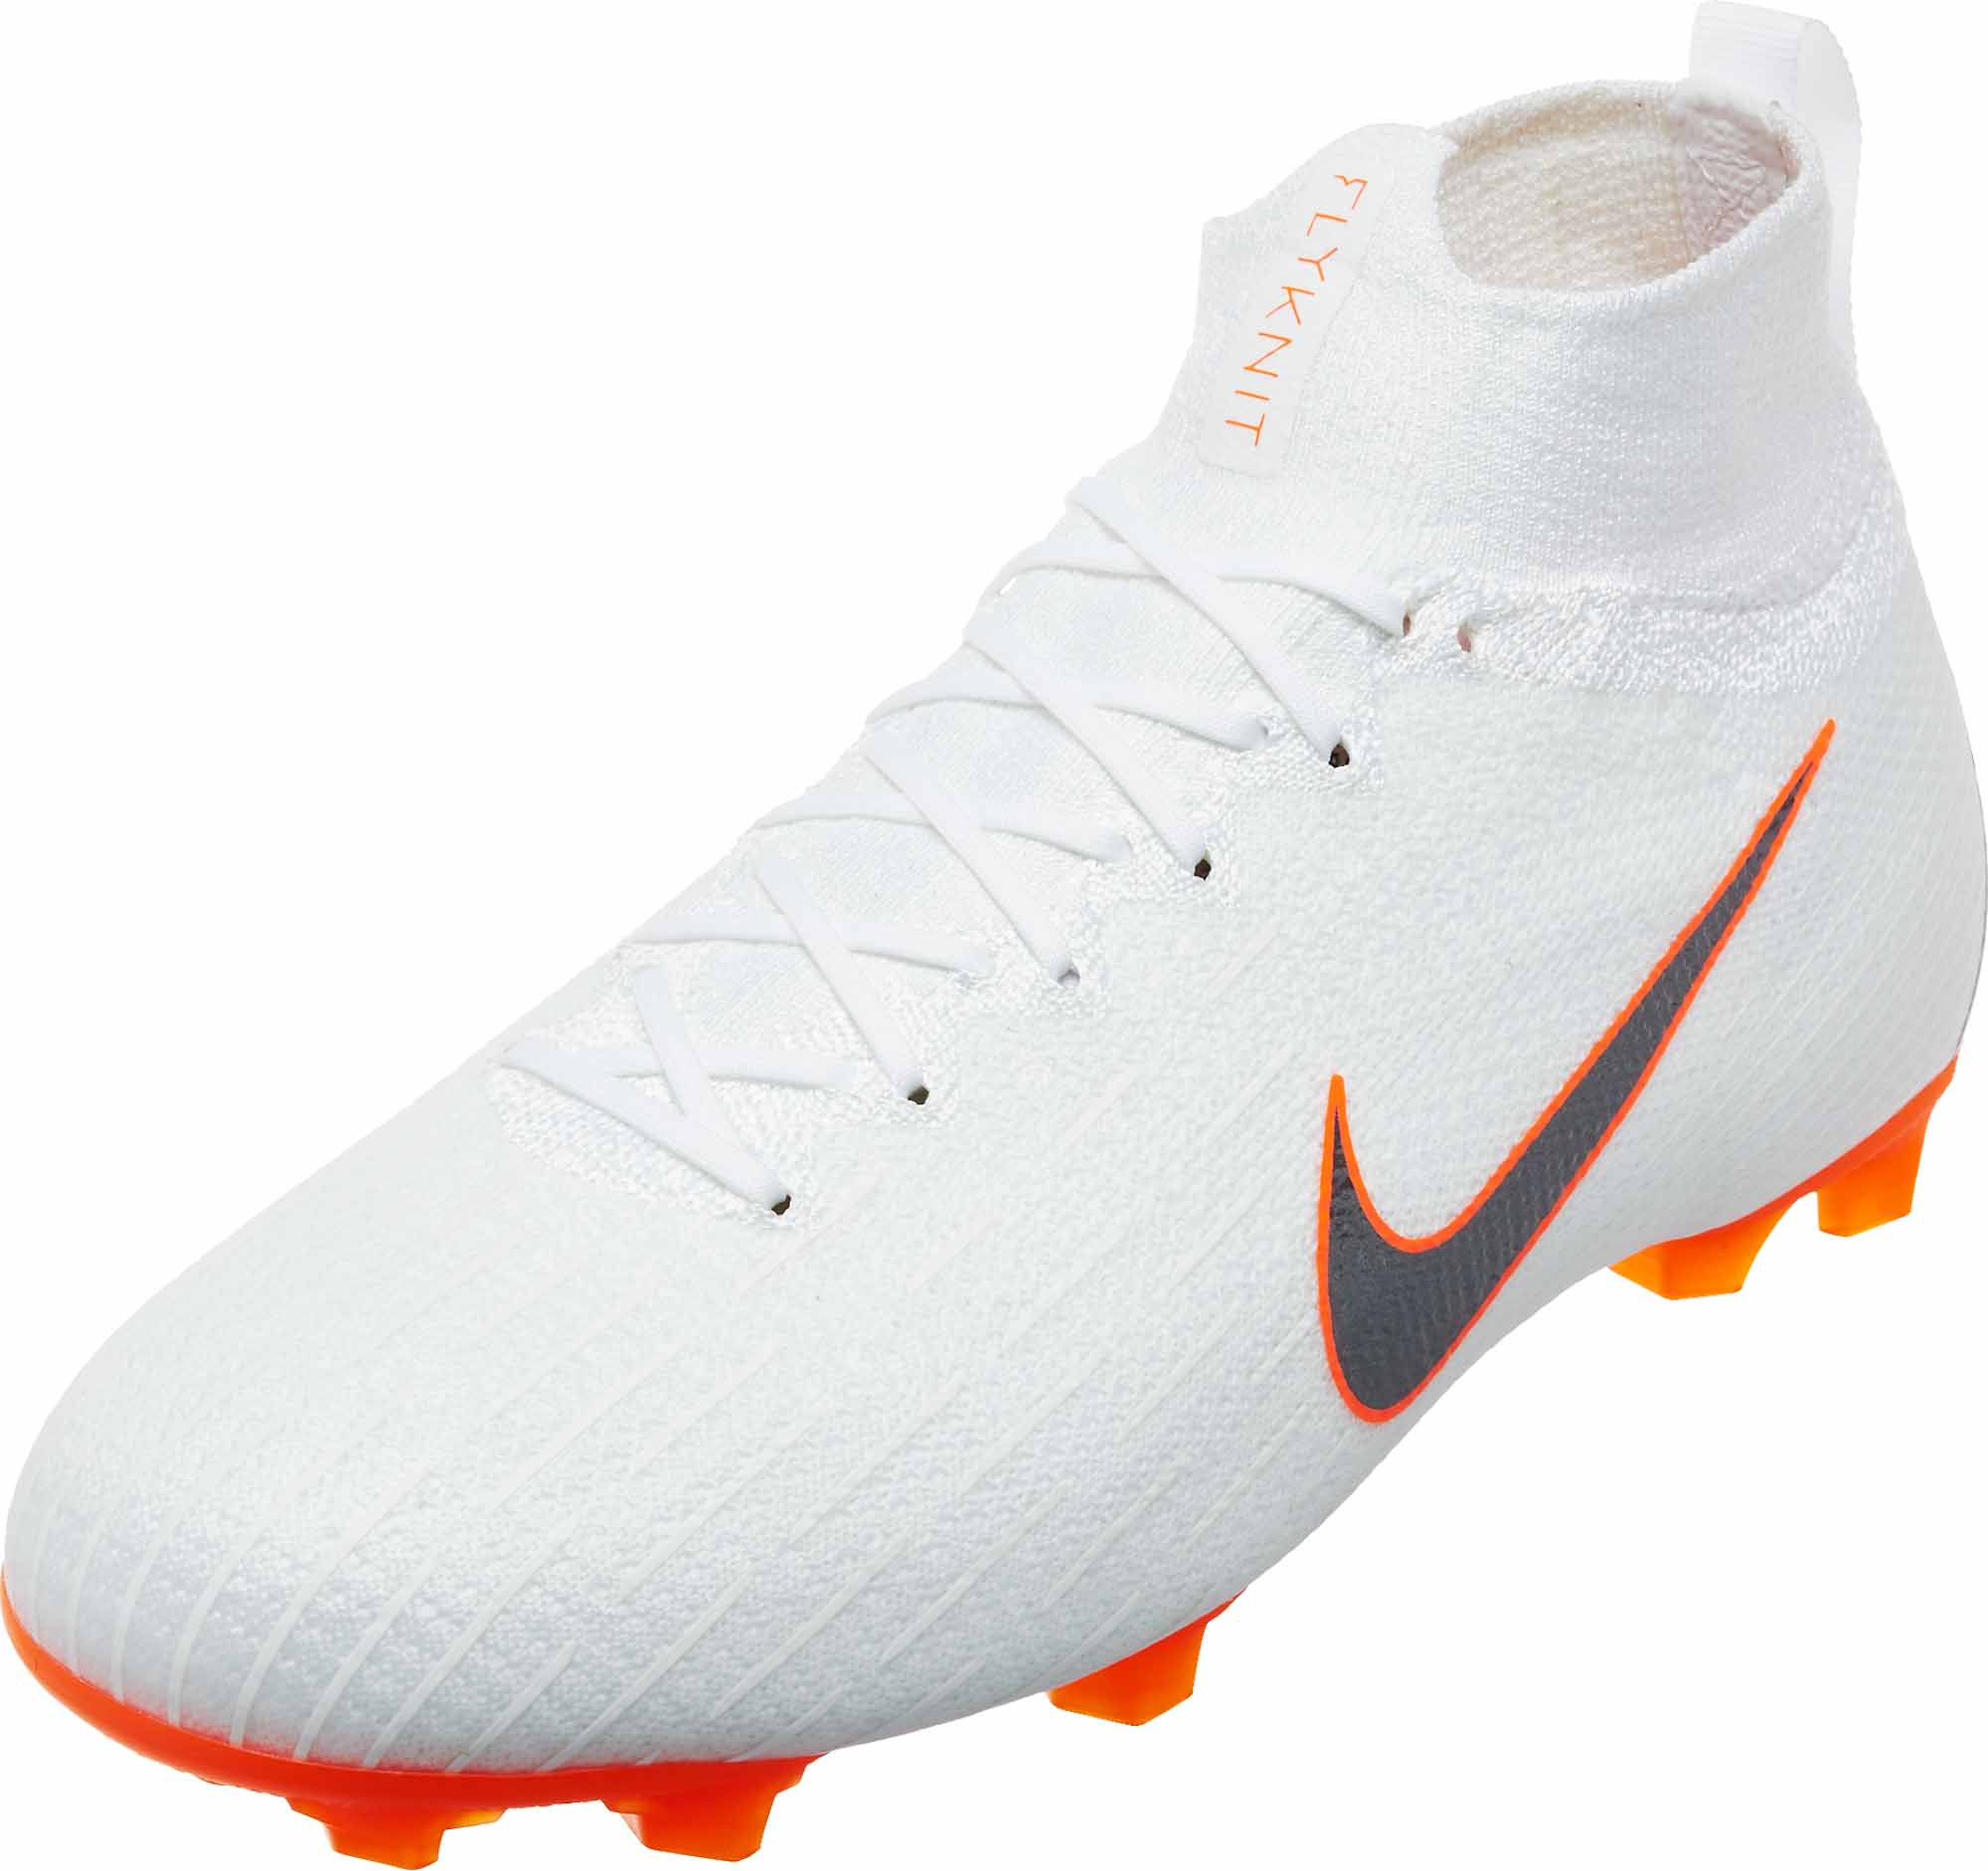 9f83b051d Nike Kids Mercurial Superfly 6 Elite FG - White Total Orange - SoccerPro